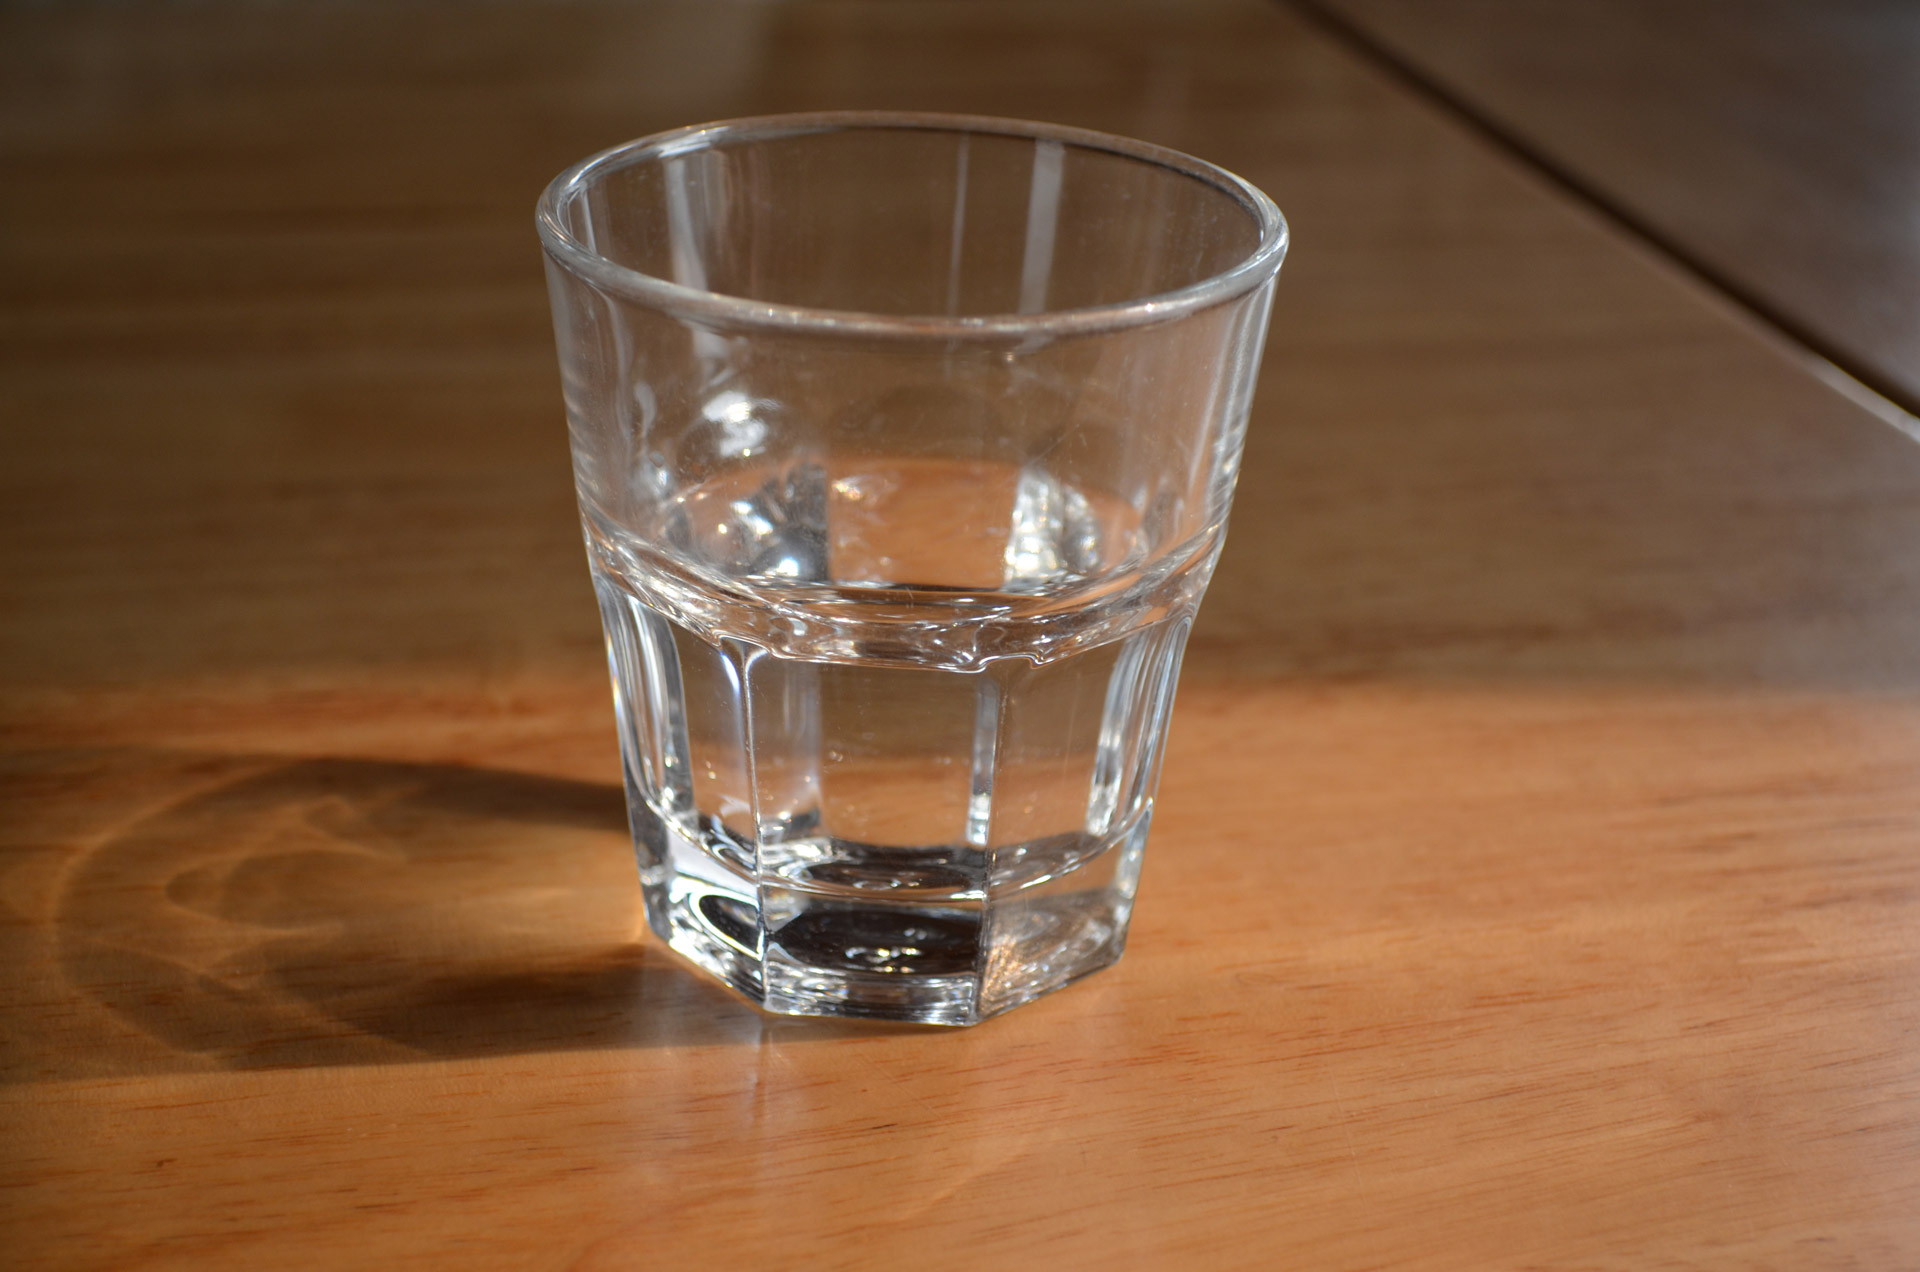 Image result for water on table